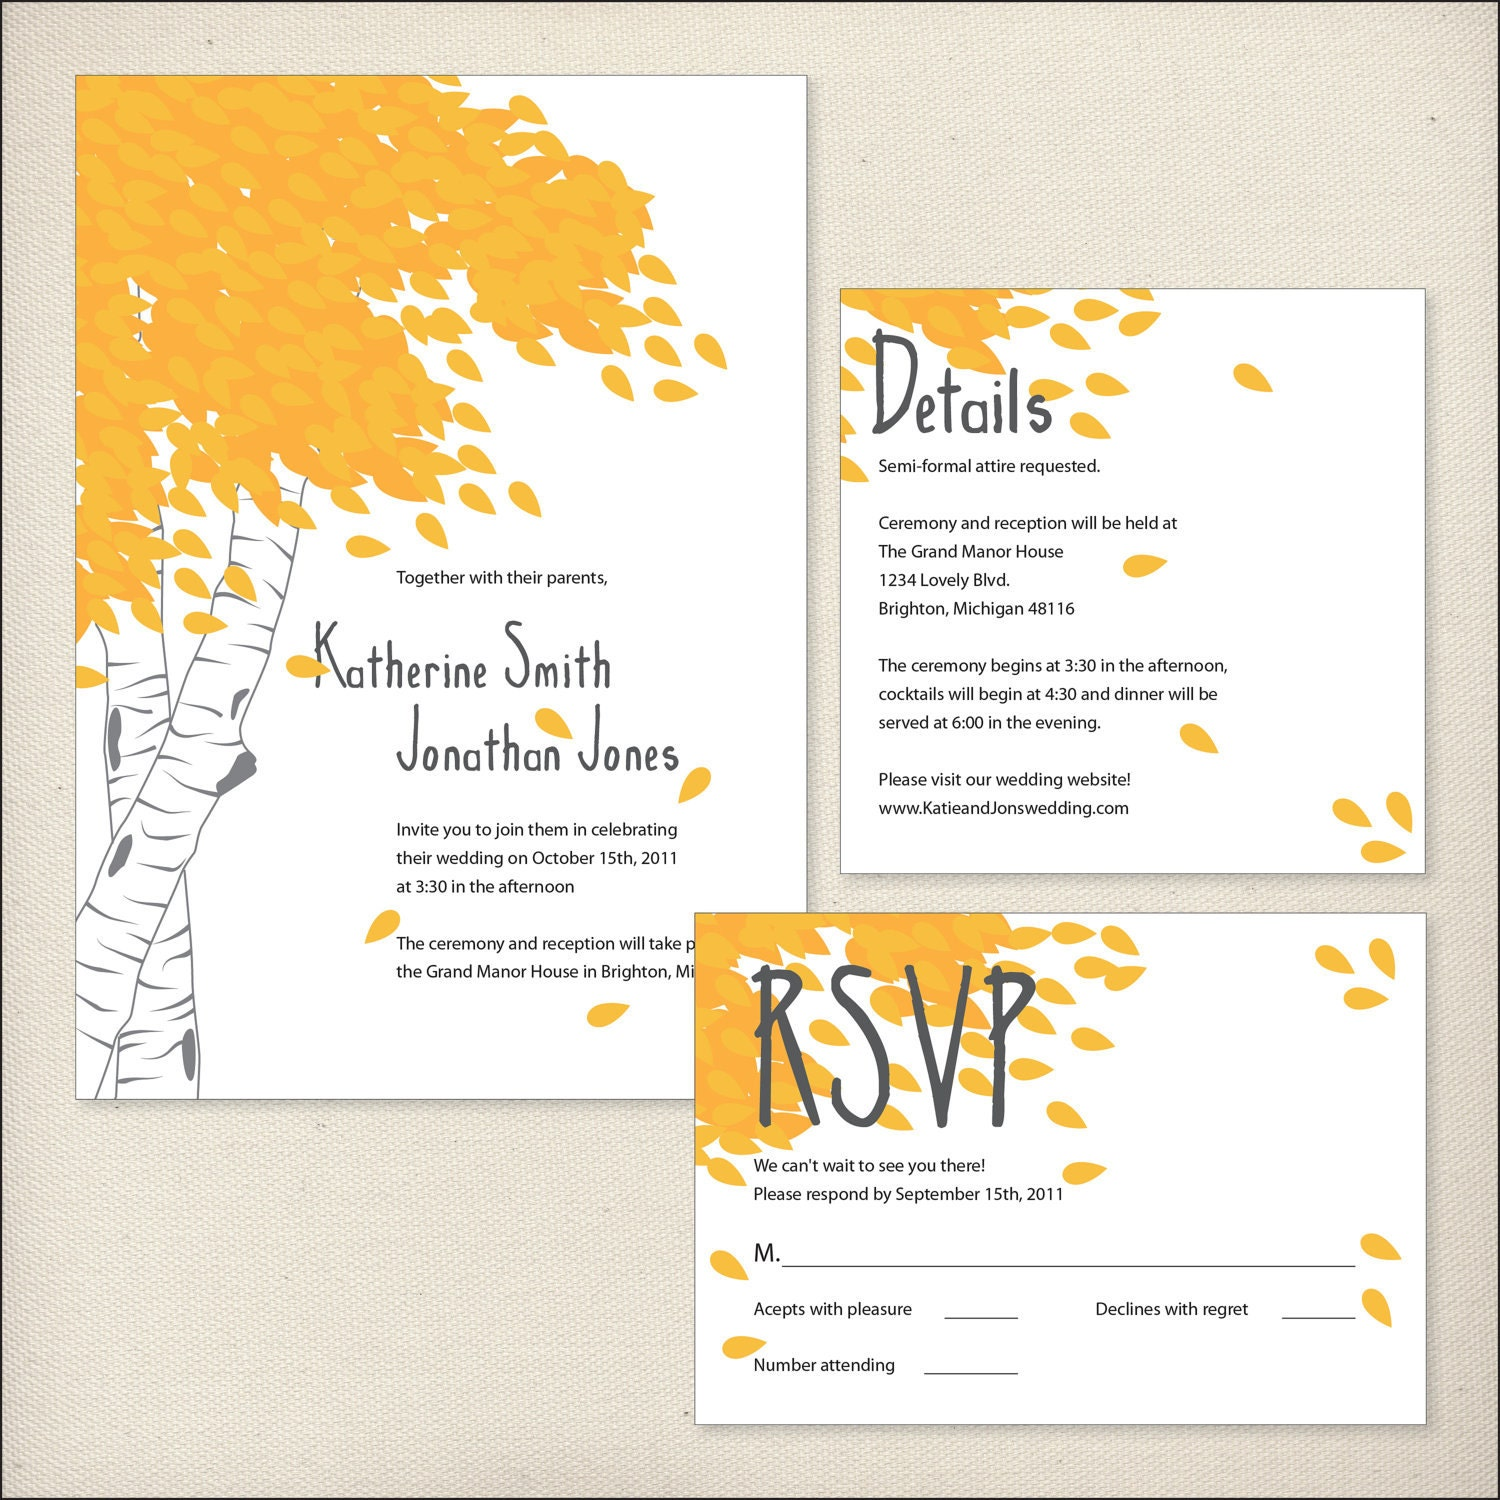 Invitation Packages Wedding: Items Similar To Birch Wedding Invitation Package On Etsy